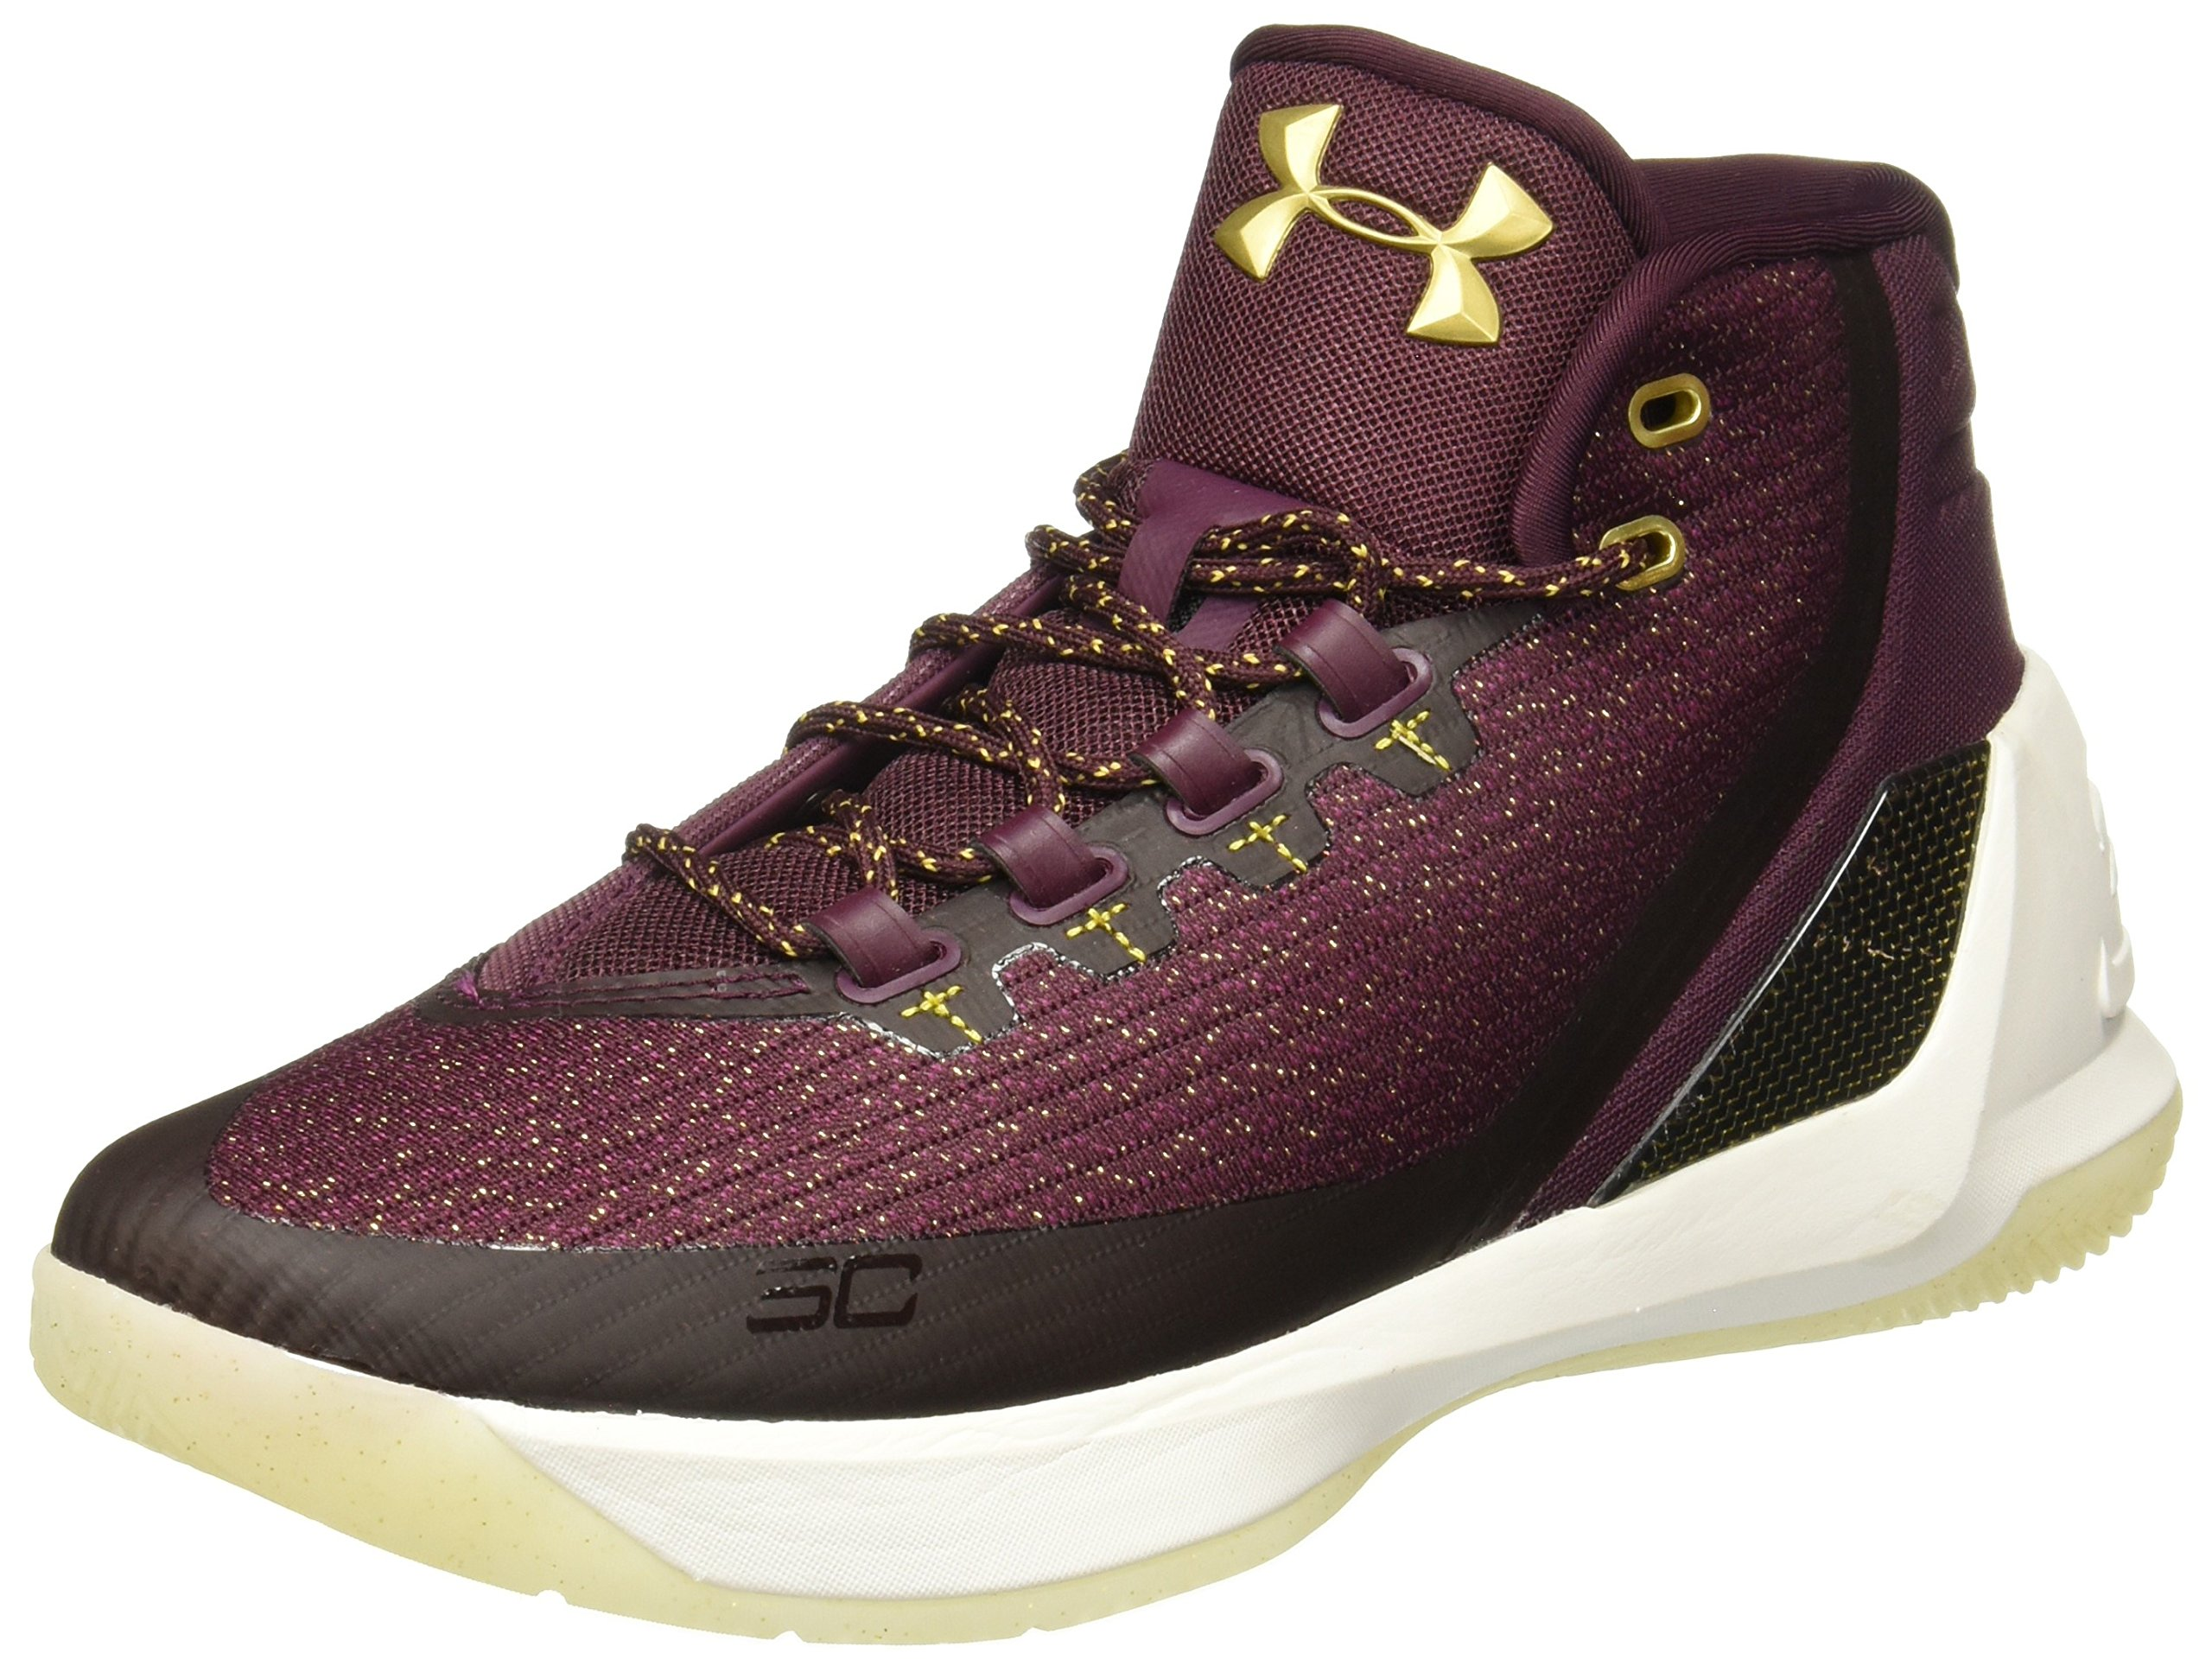 7f57248cc66e Galleon - Under Armour Men s Curry 3 Basketball Shoe (9 D(M) US